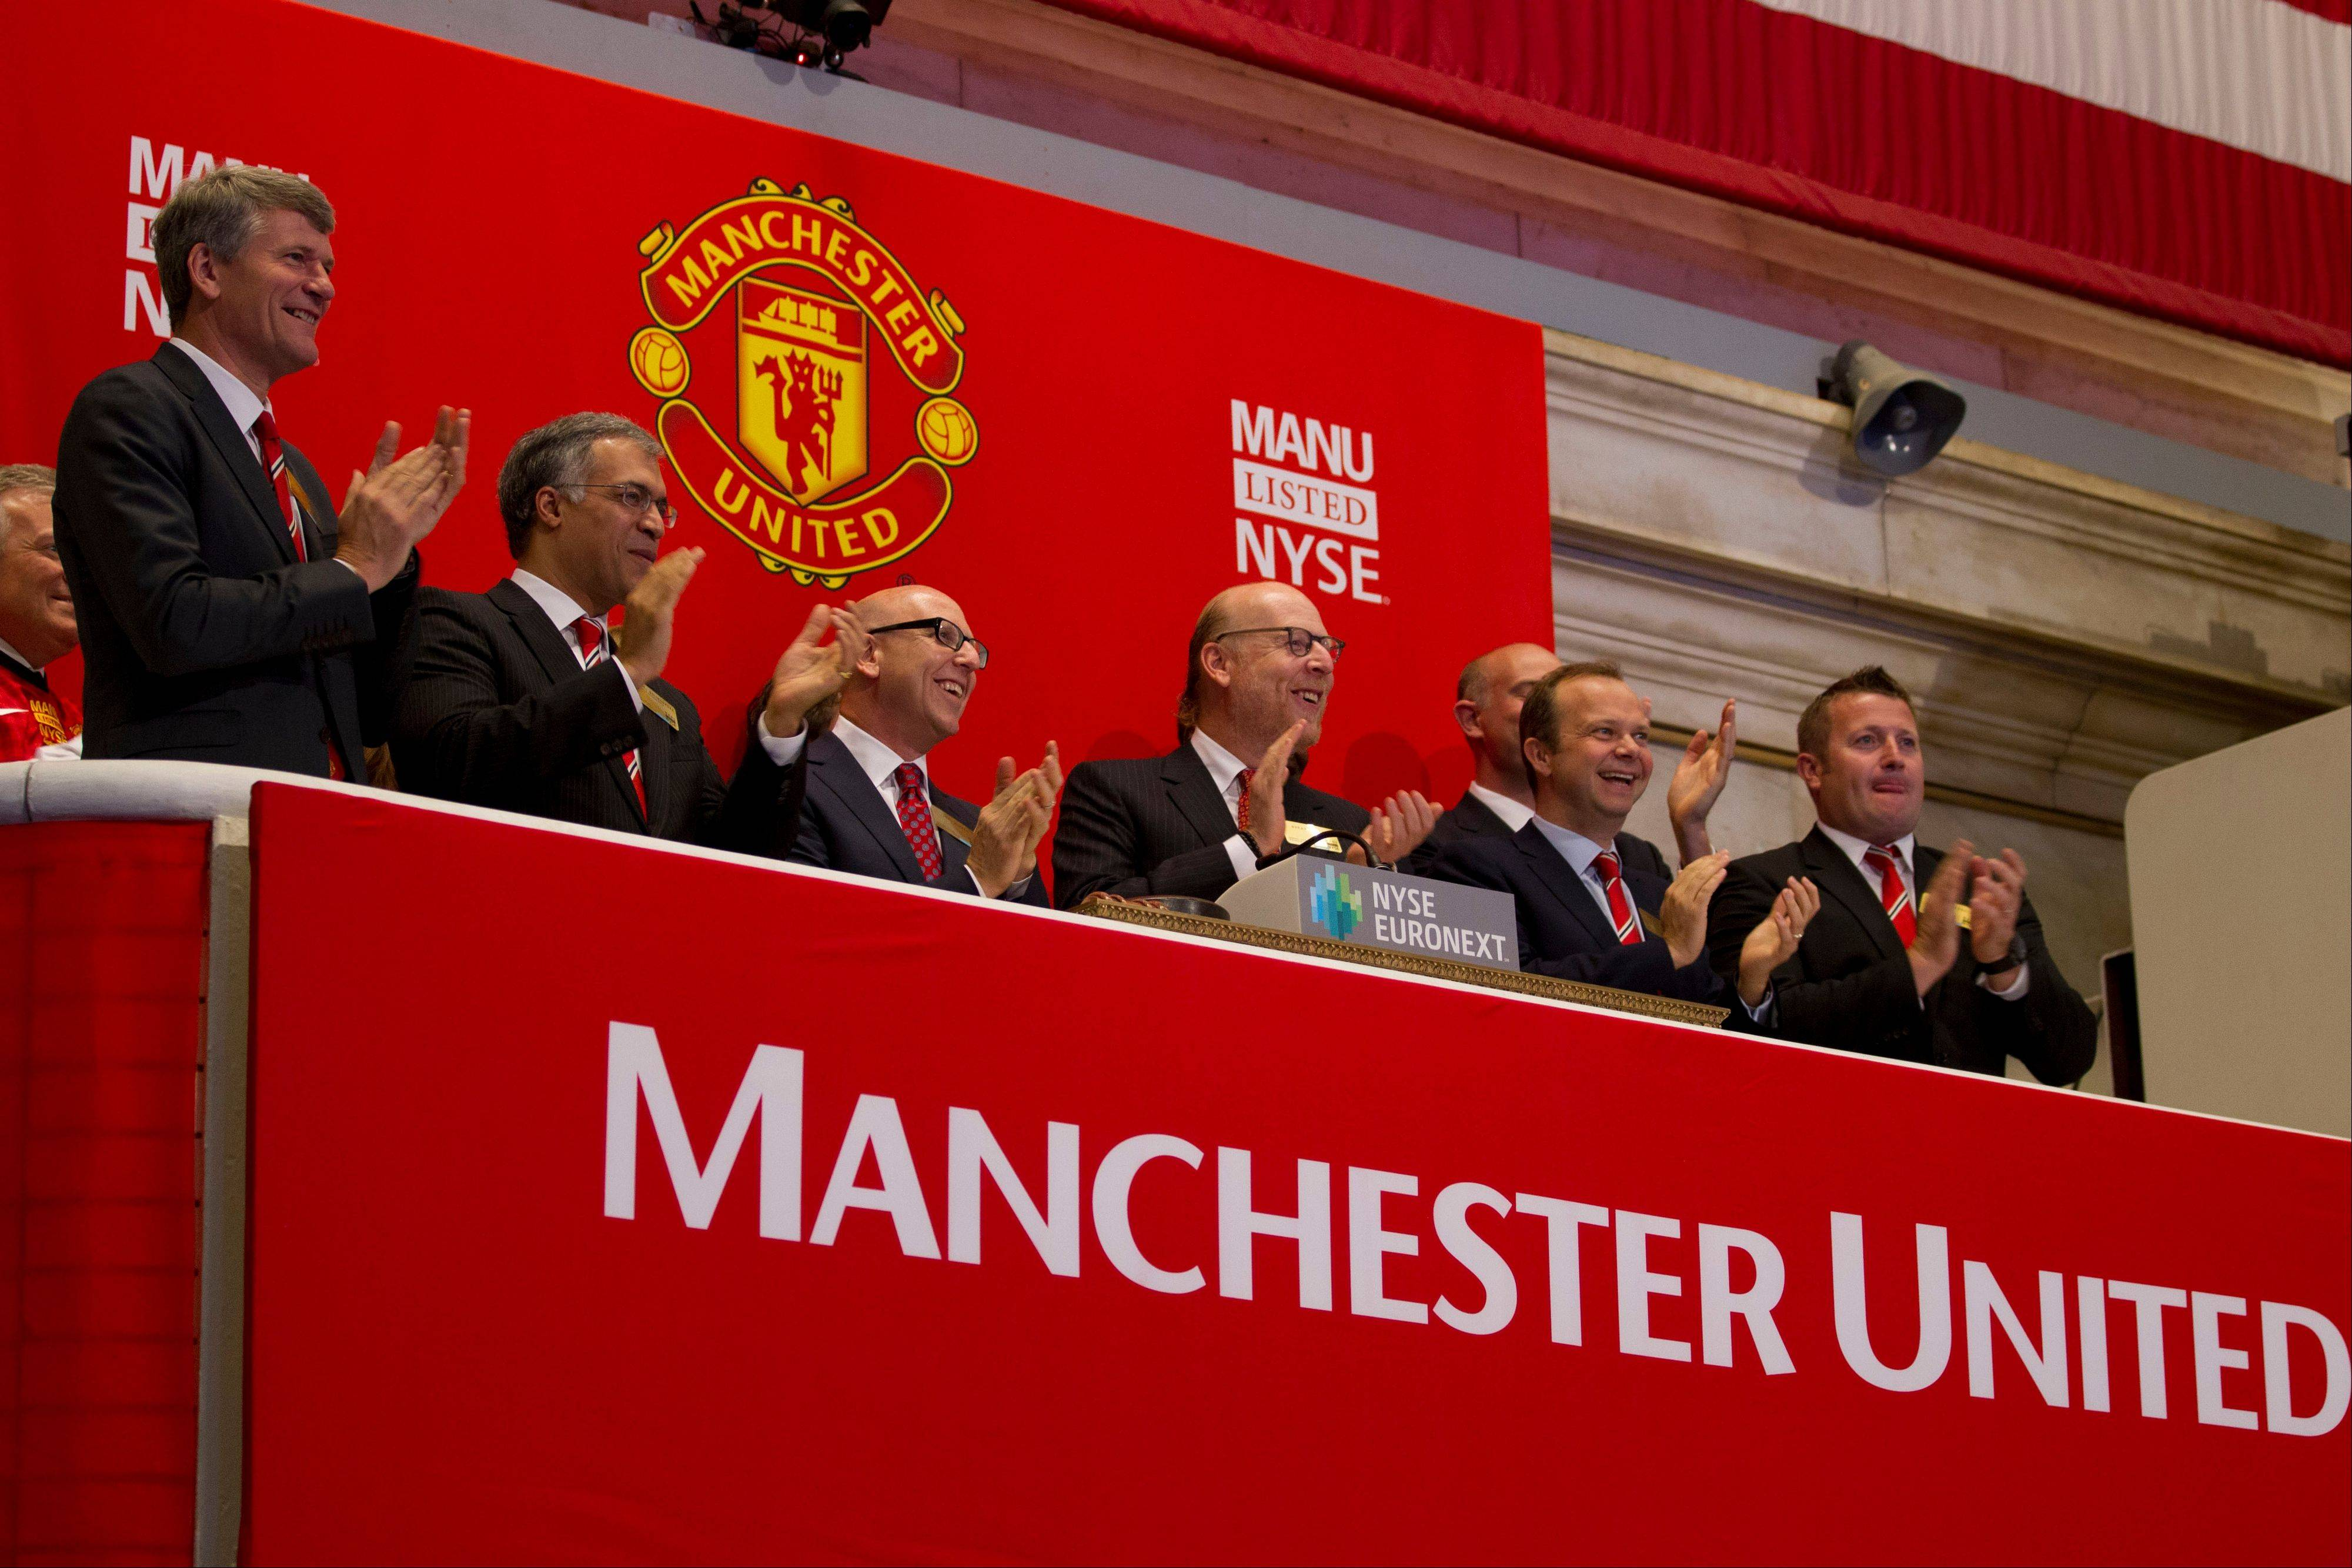 Executives from Manchester United, including Avram Glazer, fourth from left, and Joel Glazer, third from left, applaud after ringing the opening bell at the New York Stock Exchange on Friday, Aug. 10, 2012 in New York. Shares of soccer club Manchester United made their public debut Friday, edging up slightly as shareholders' enthusiasm for the celebrated team was offset by worry about its debt load and financial performance.